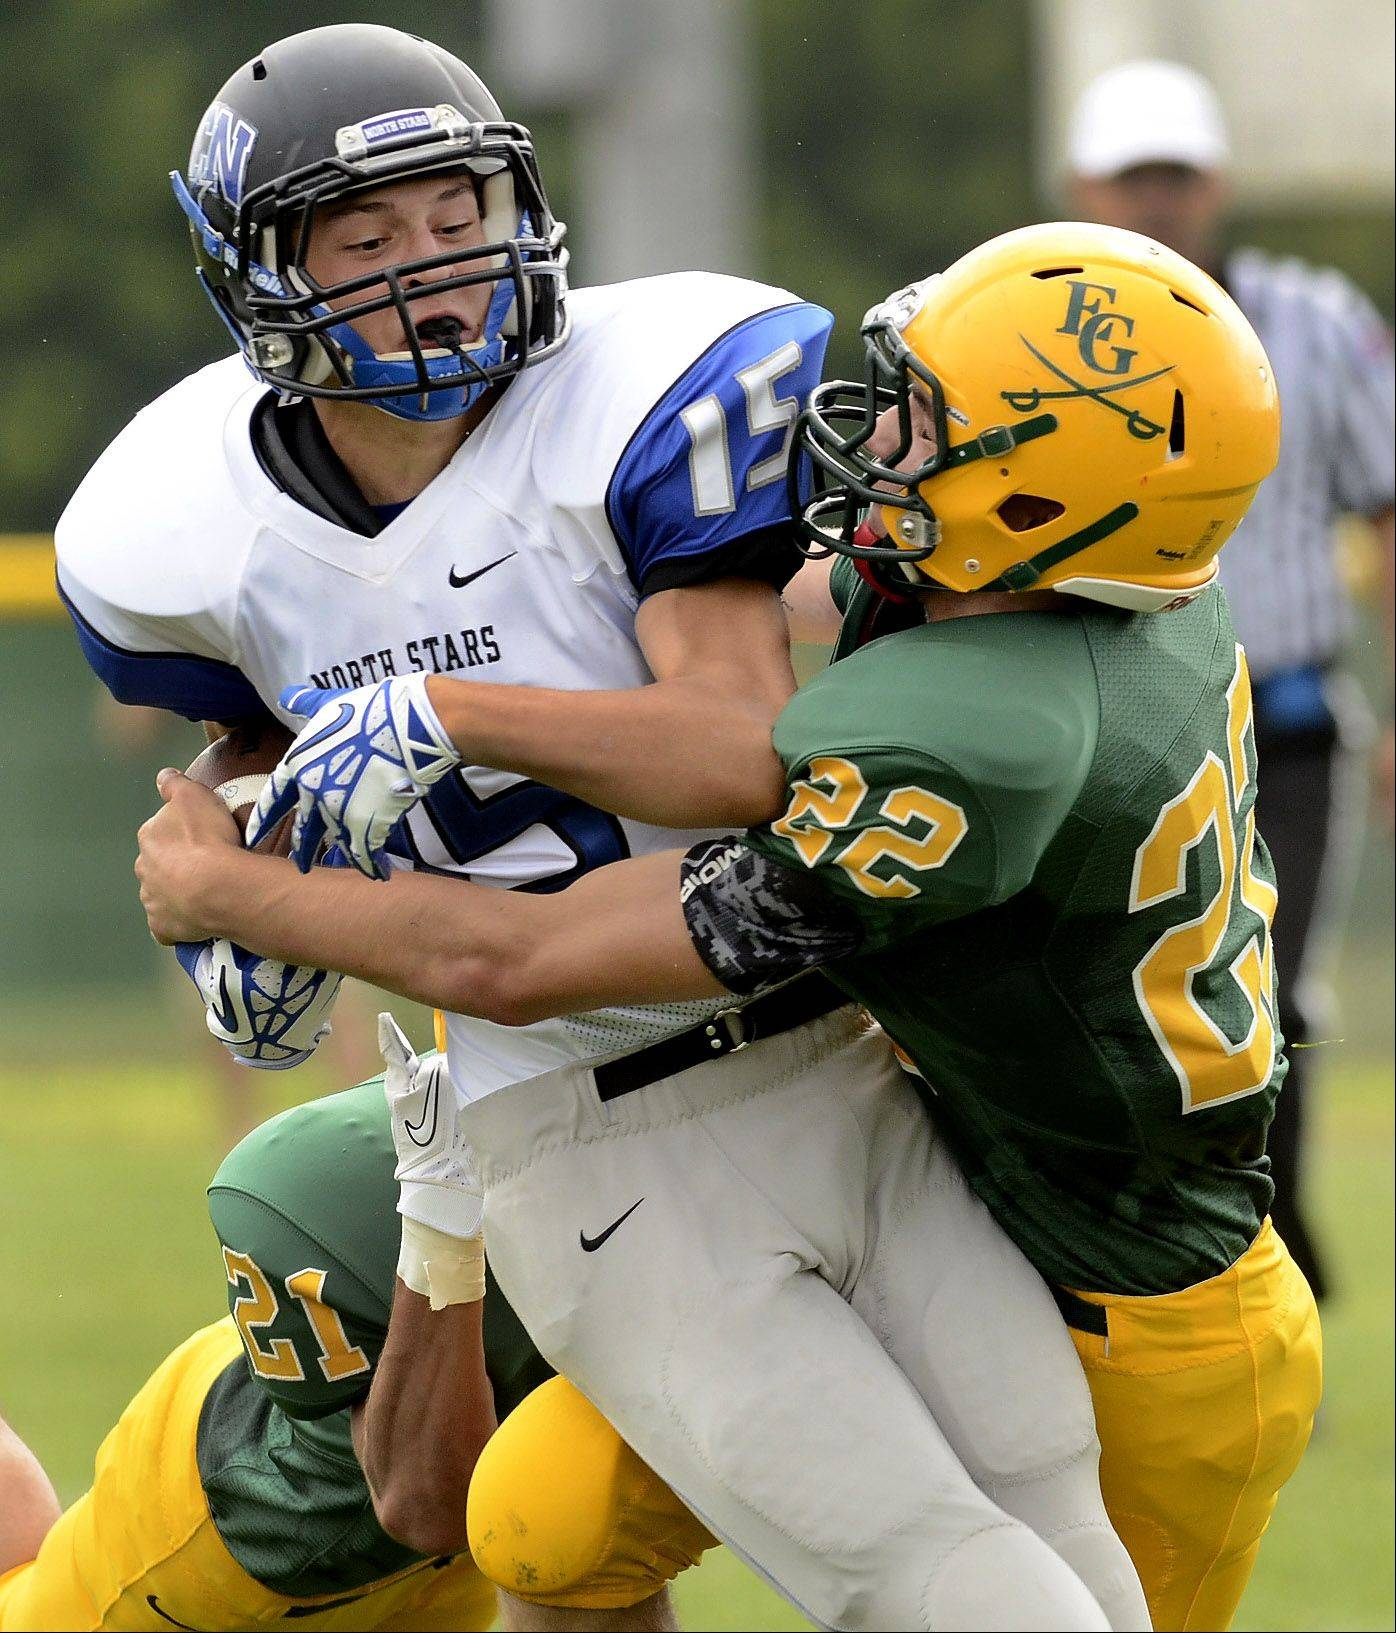 Elk Grove's Sean Oldenburg wraps up John LeGare of St. Charles North.